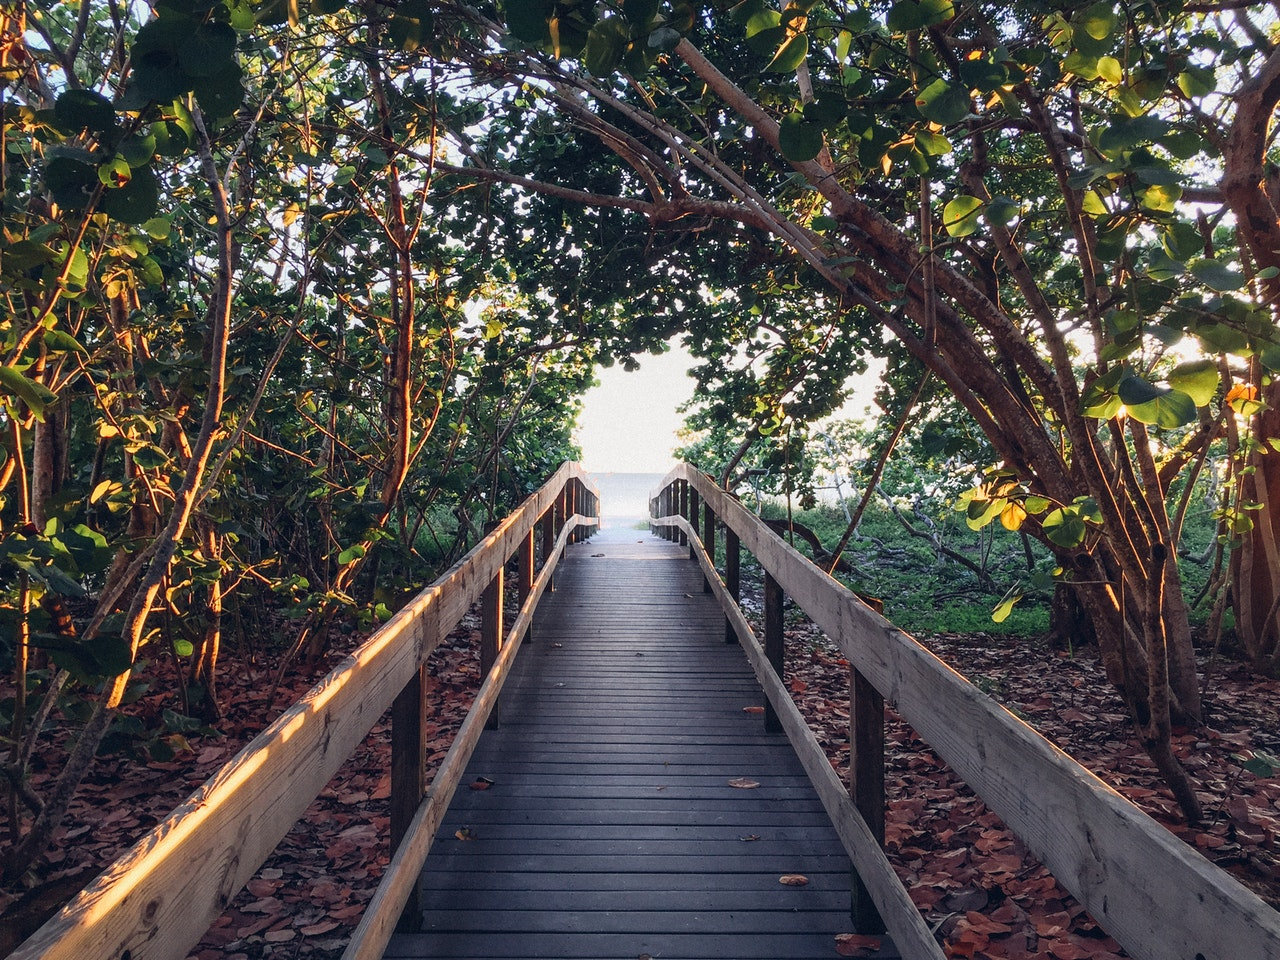 The Positive Effects Of Nature On Your Well-Being